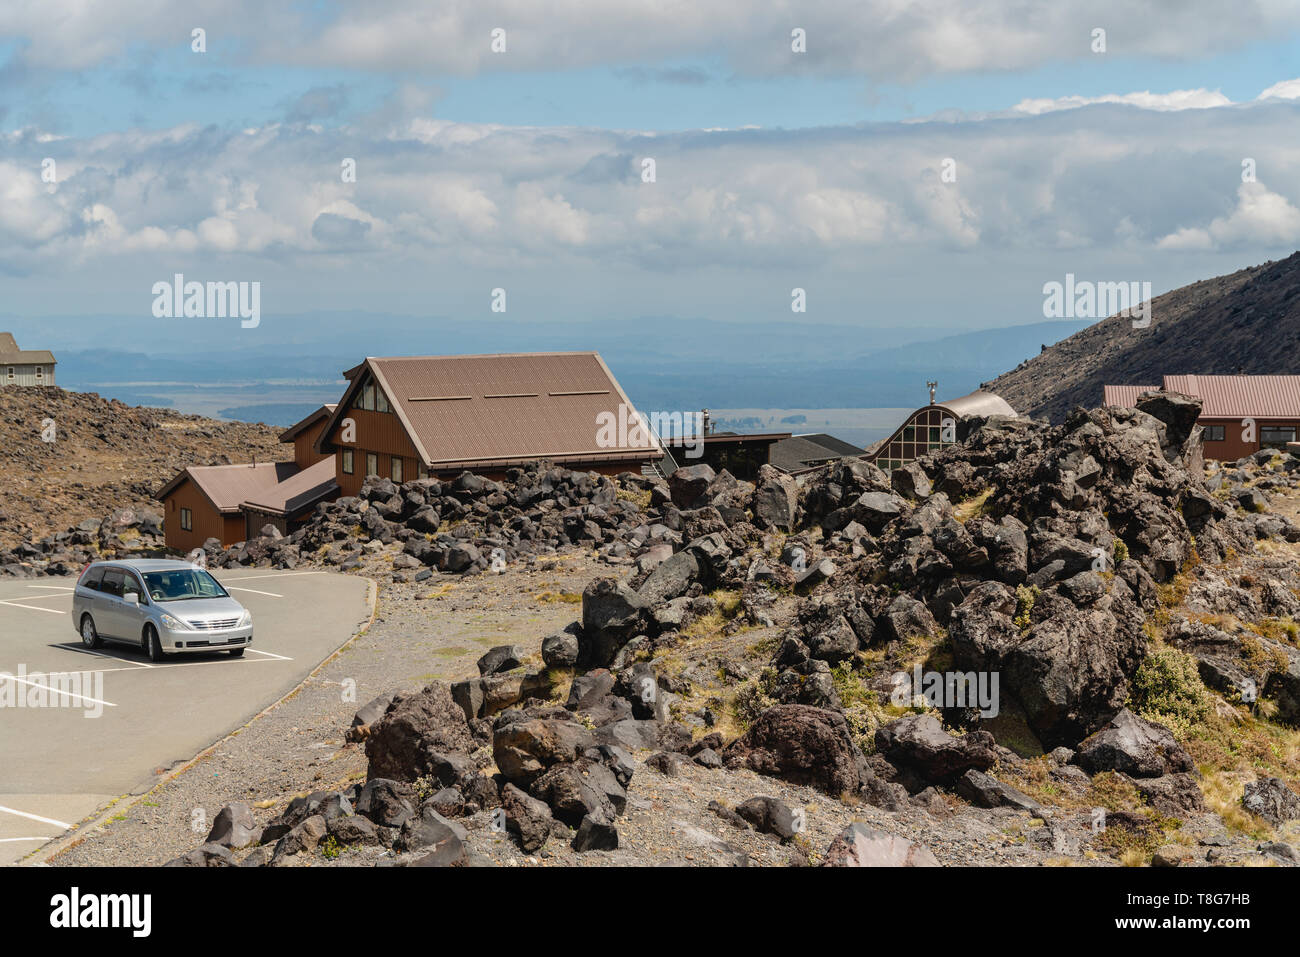 Whakapapa Village on Mount Ruapehu Volcano, Tongariro National Park, New Zealand - Stock Image